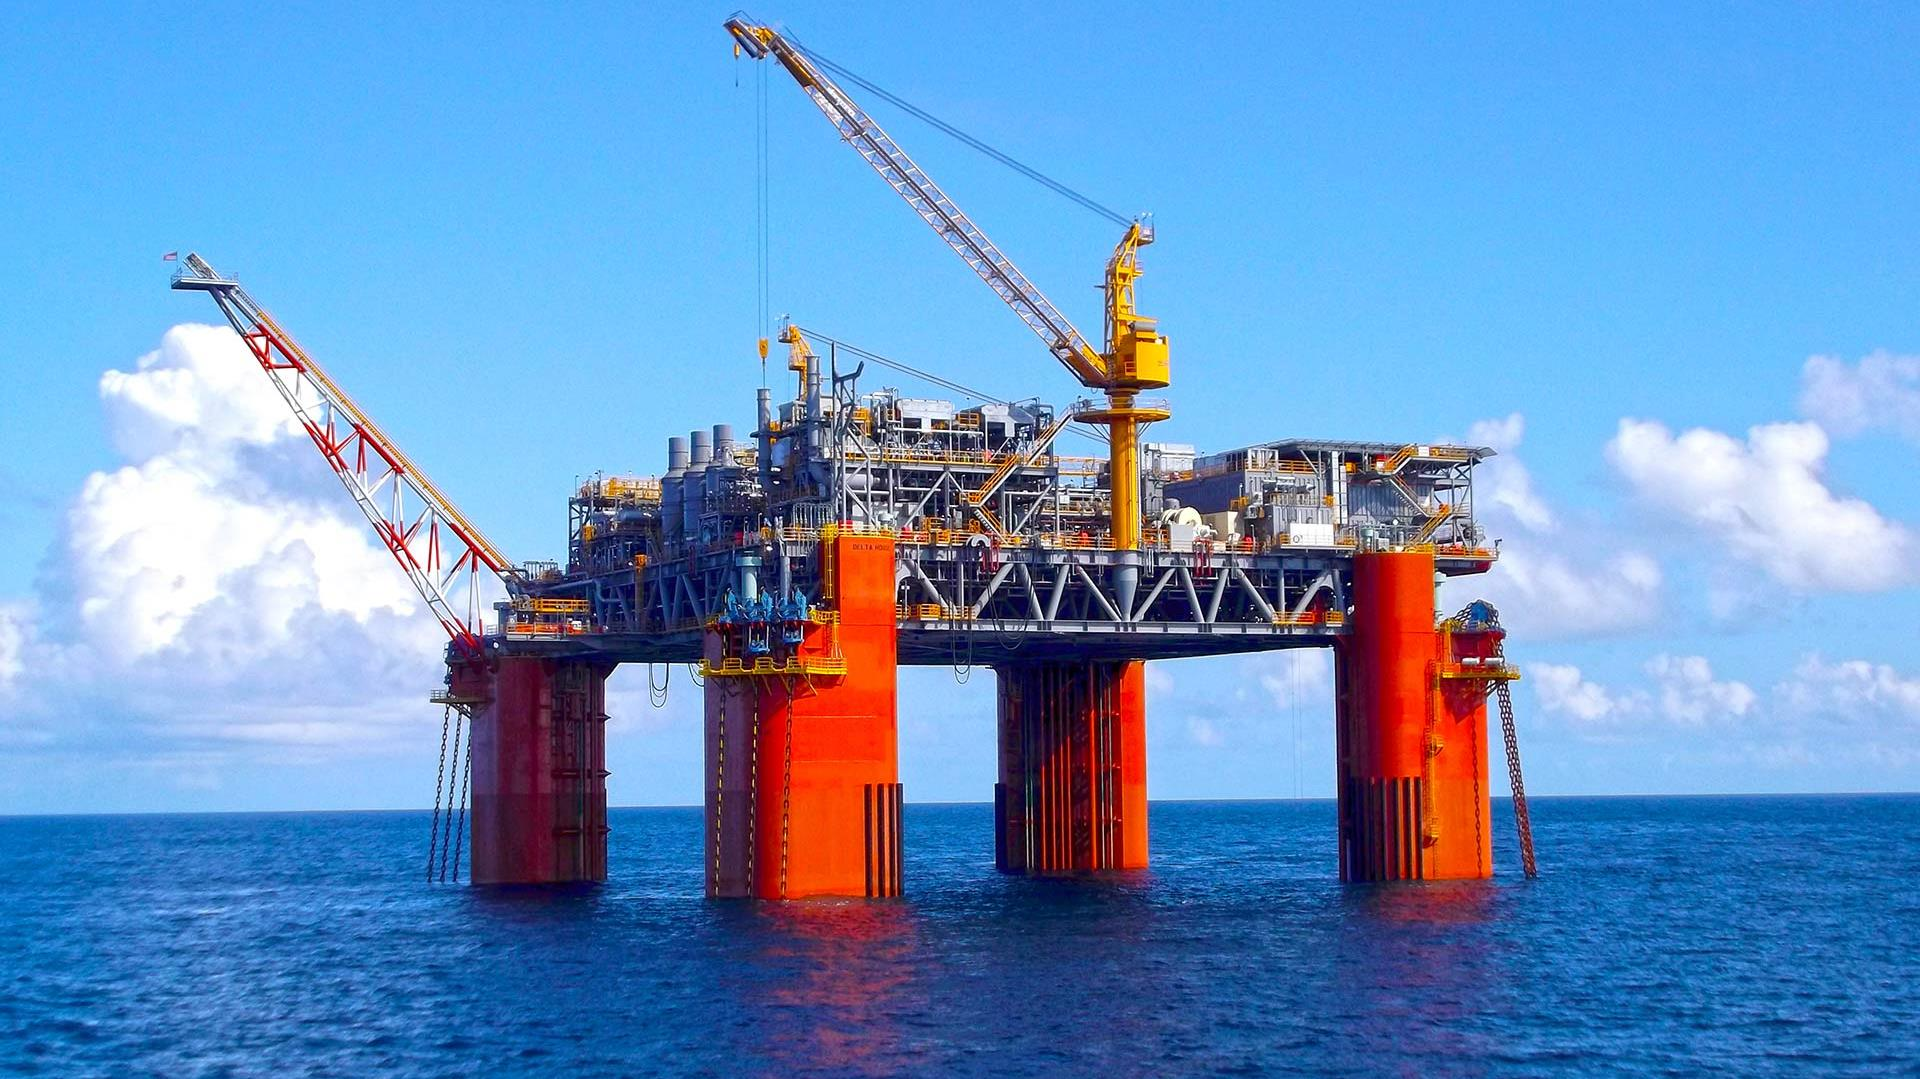 Ocean view of the LLOG Delta House semi-submersible offshore